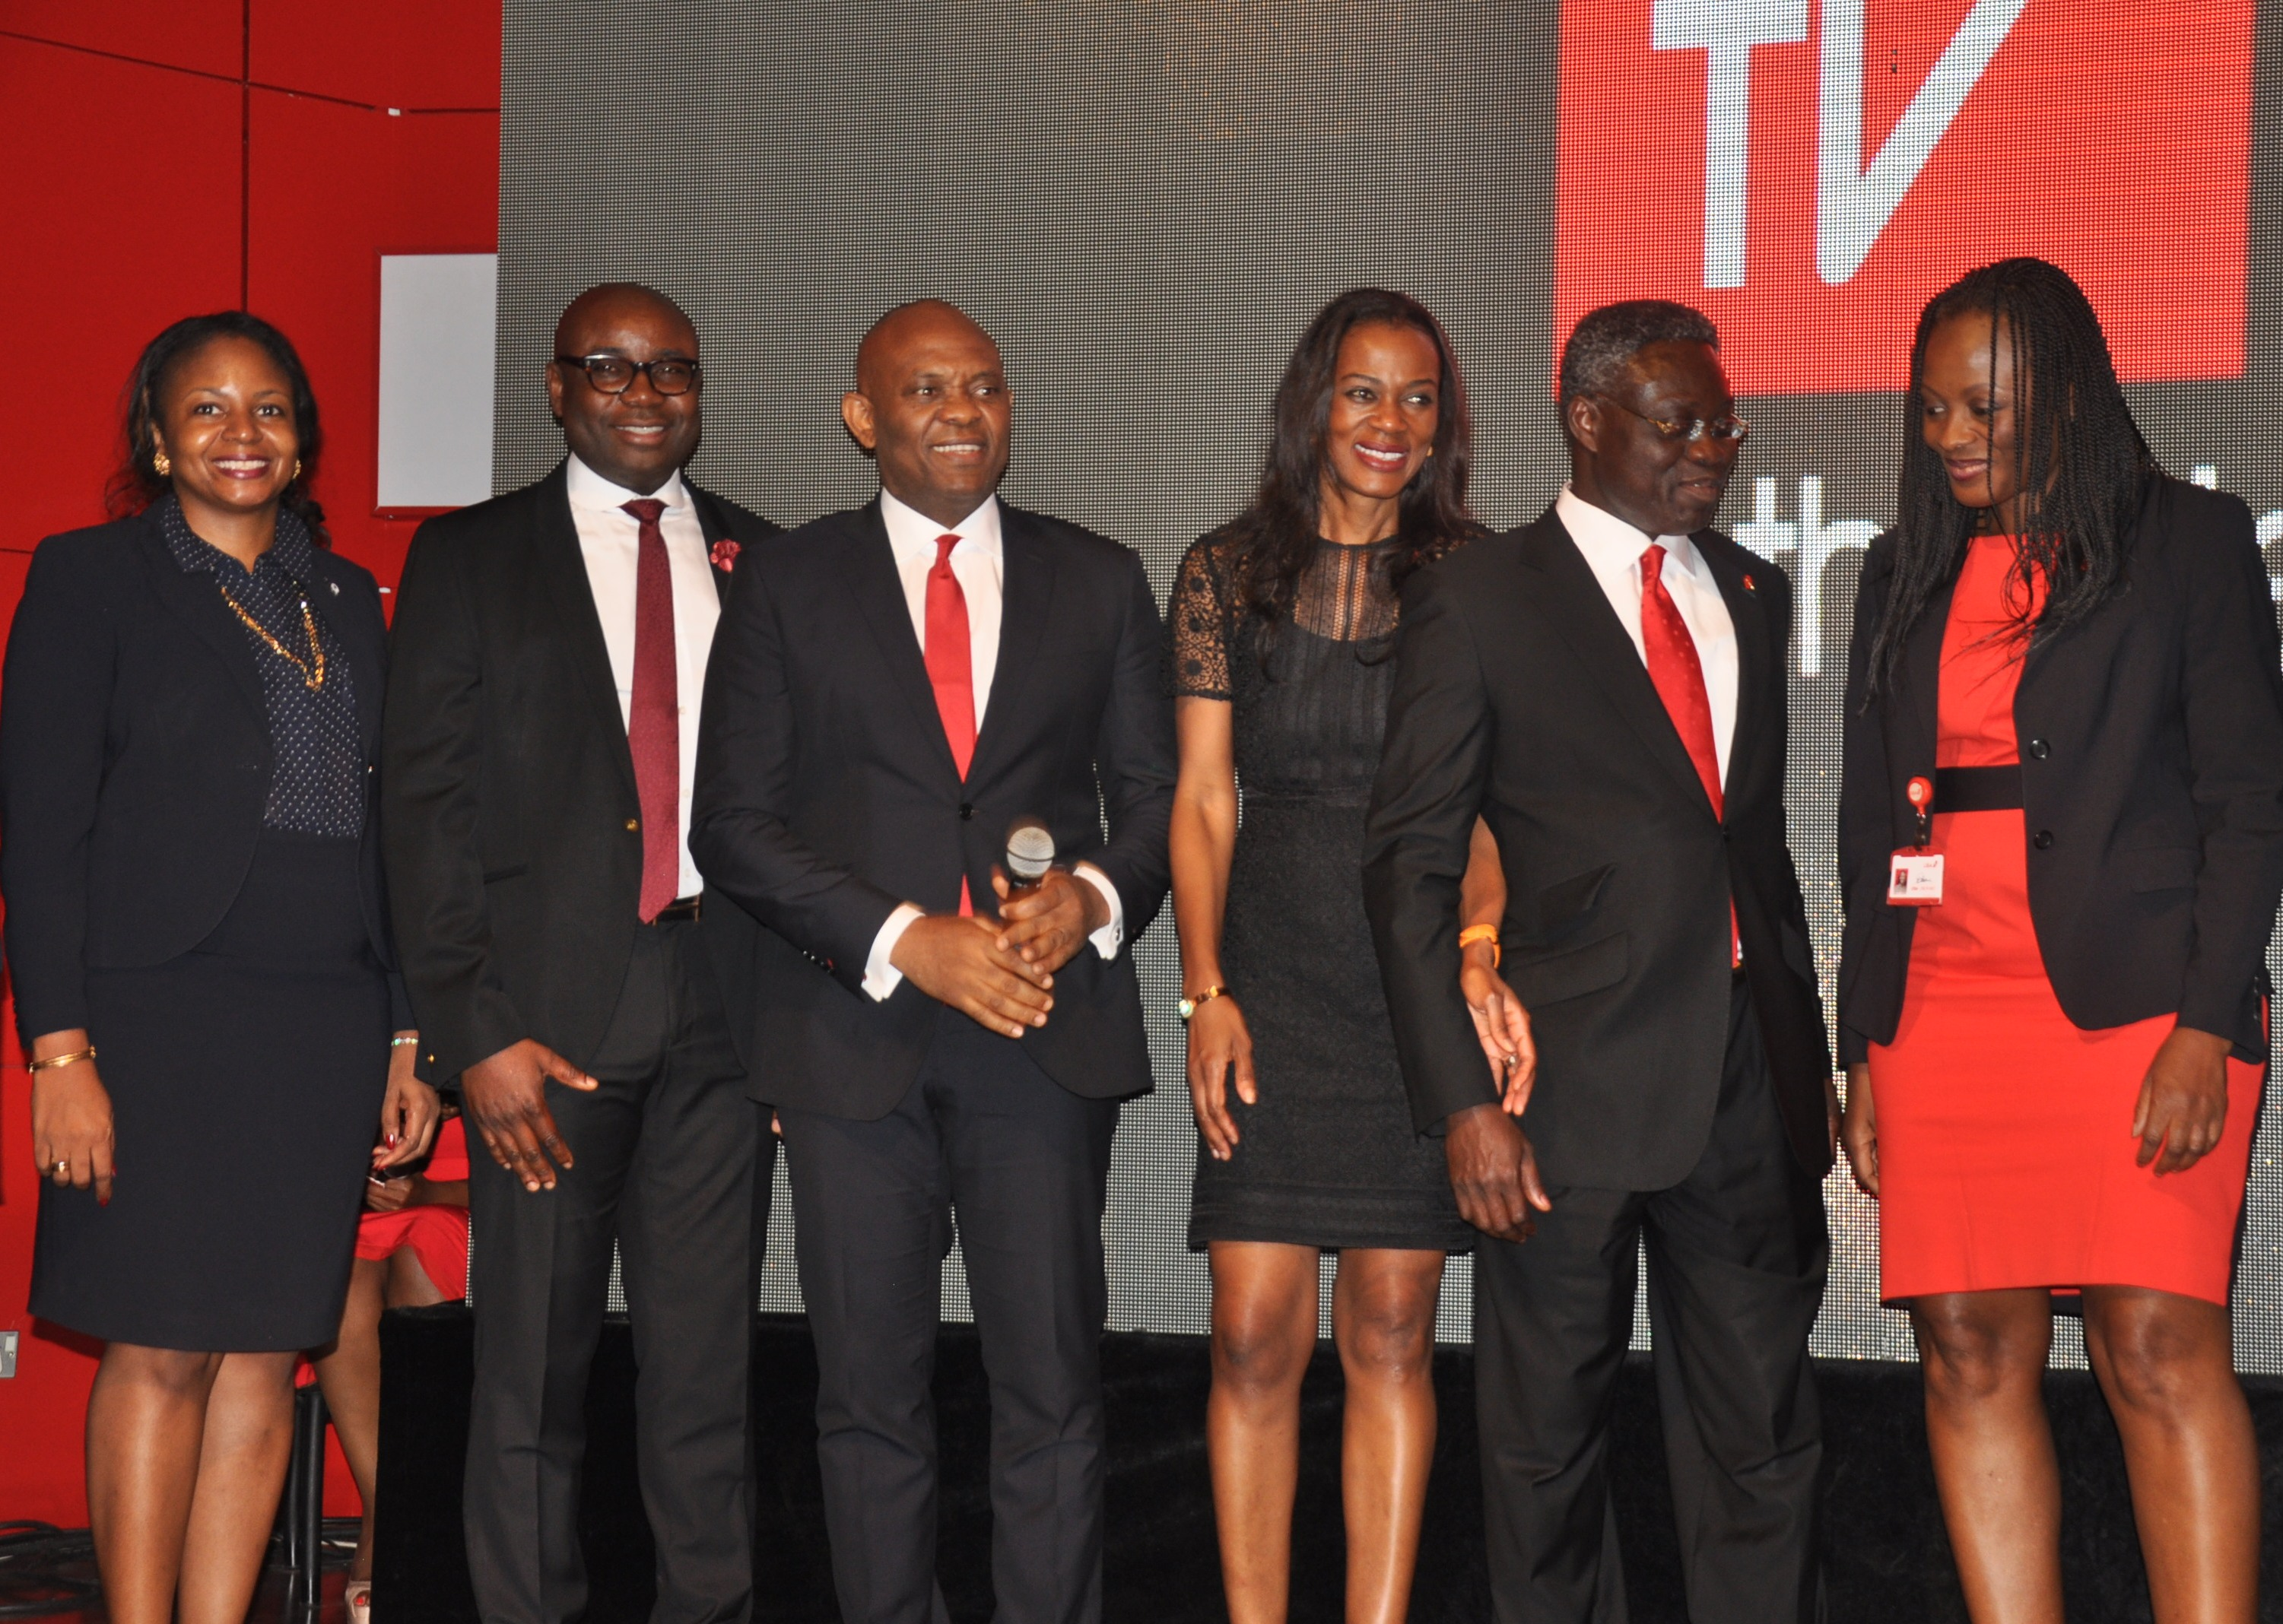 REDTV Launch Picture 2